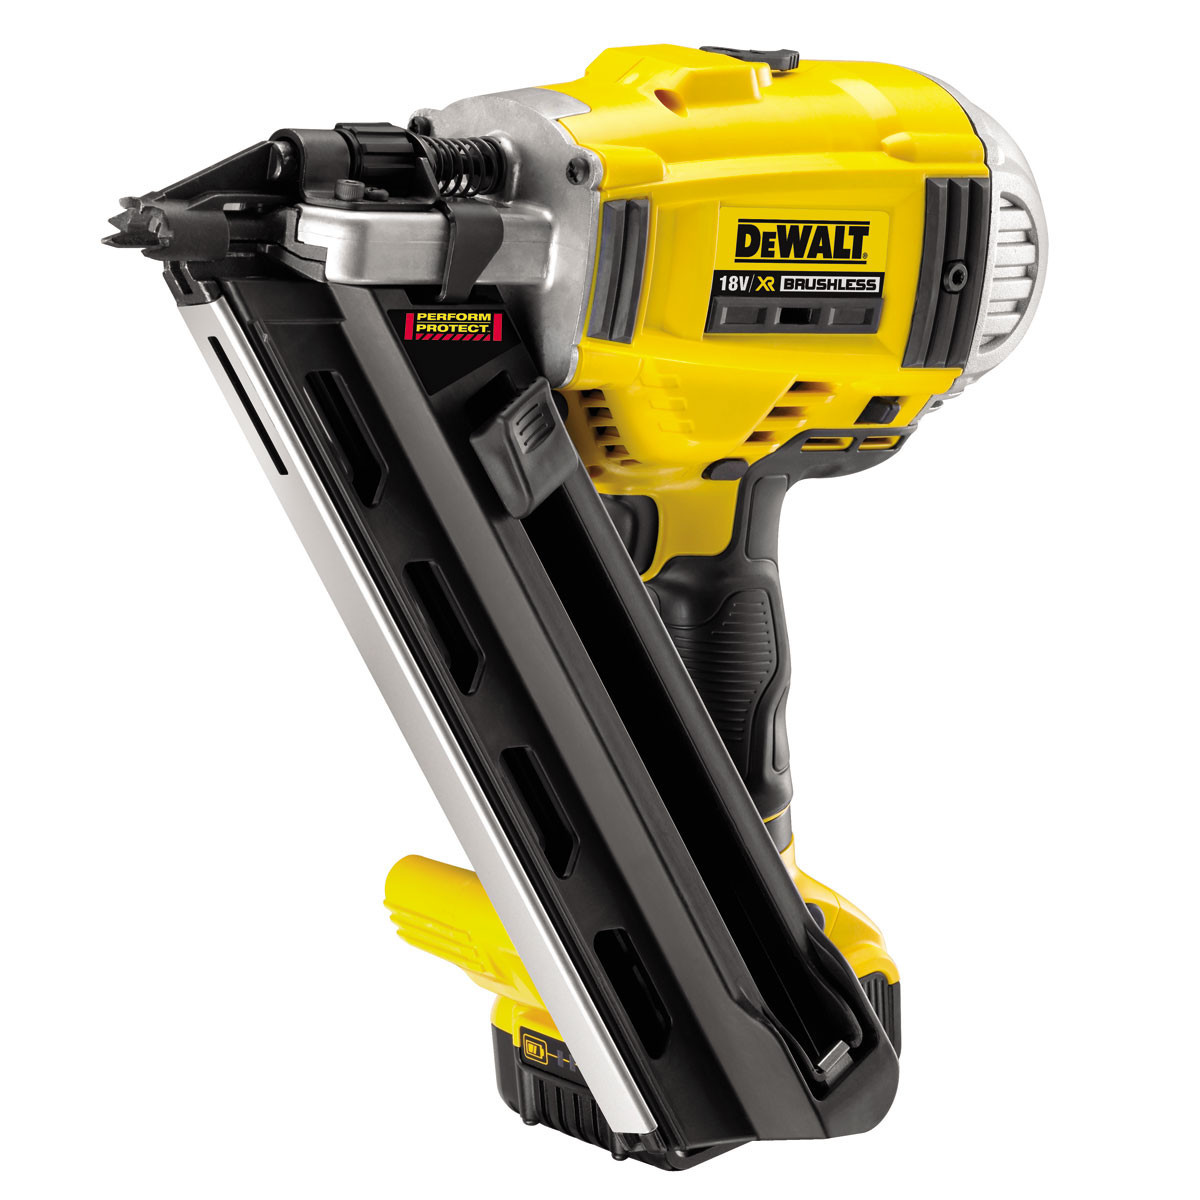 Spikpistol Dewalt DCN690, 50-90mm Batteri